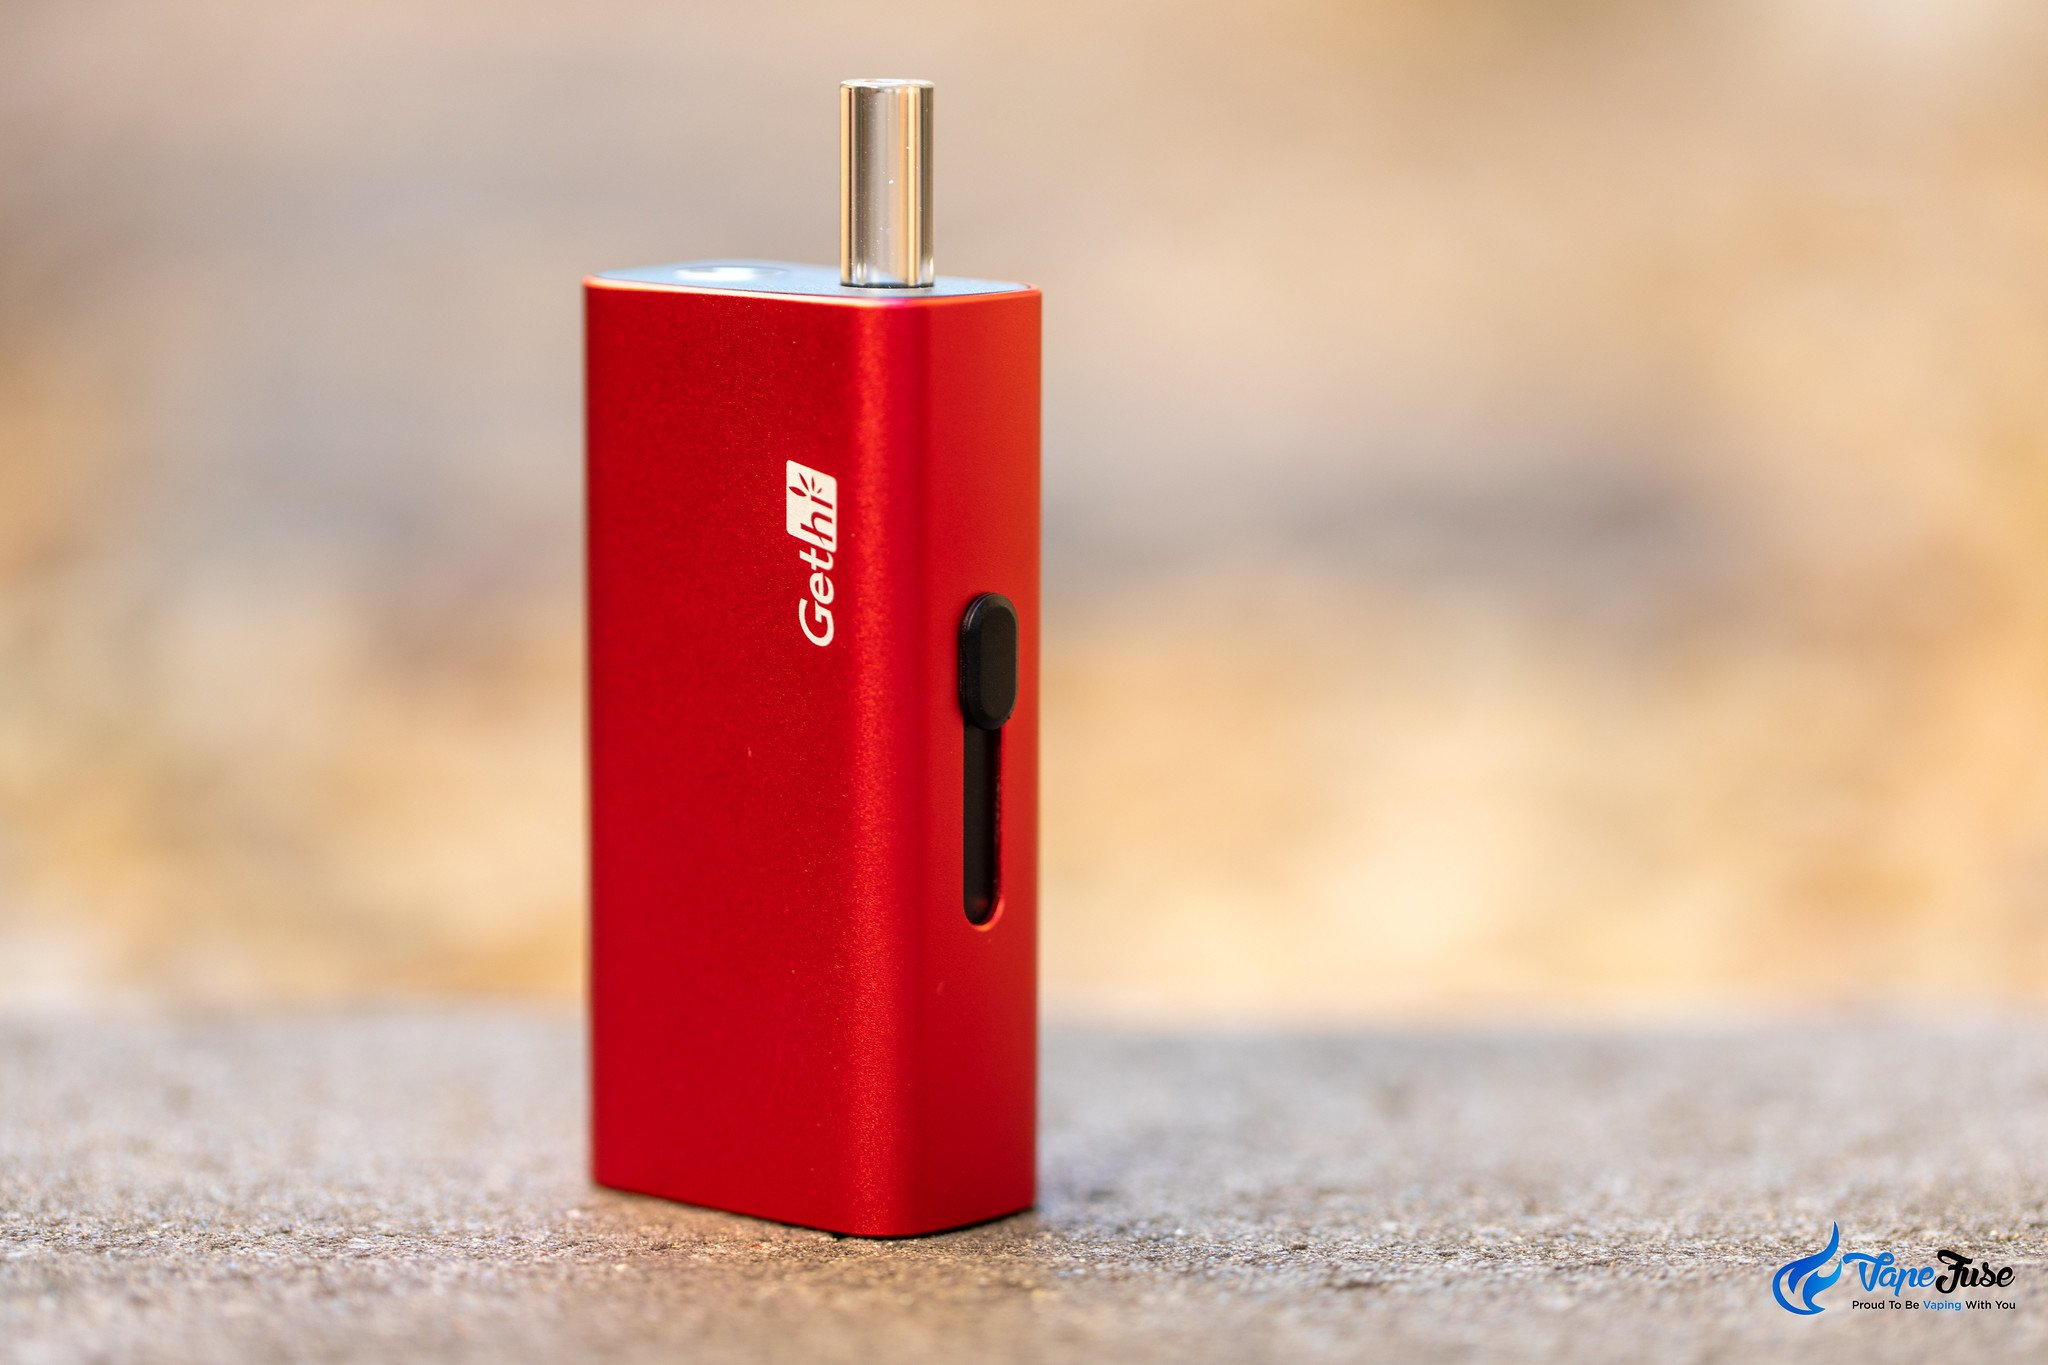 Gethi G6 Dry Herb Vaporizer Review